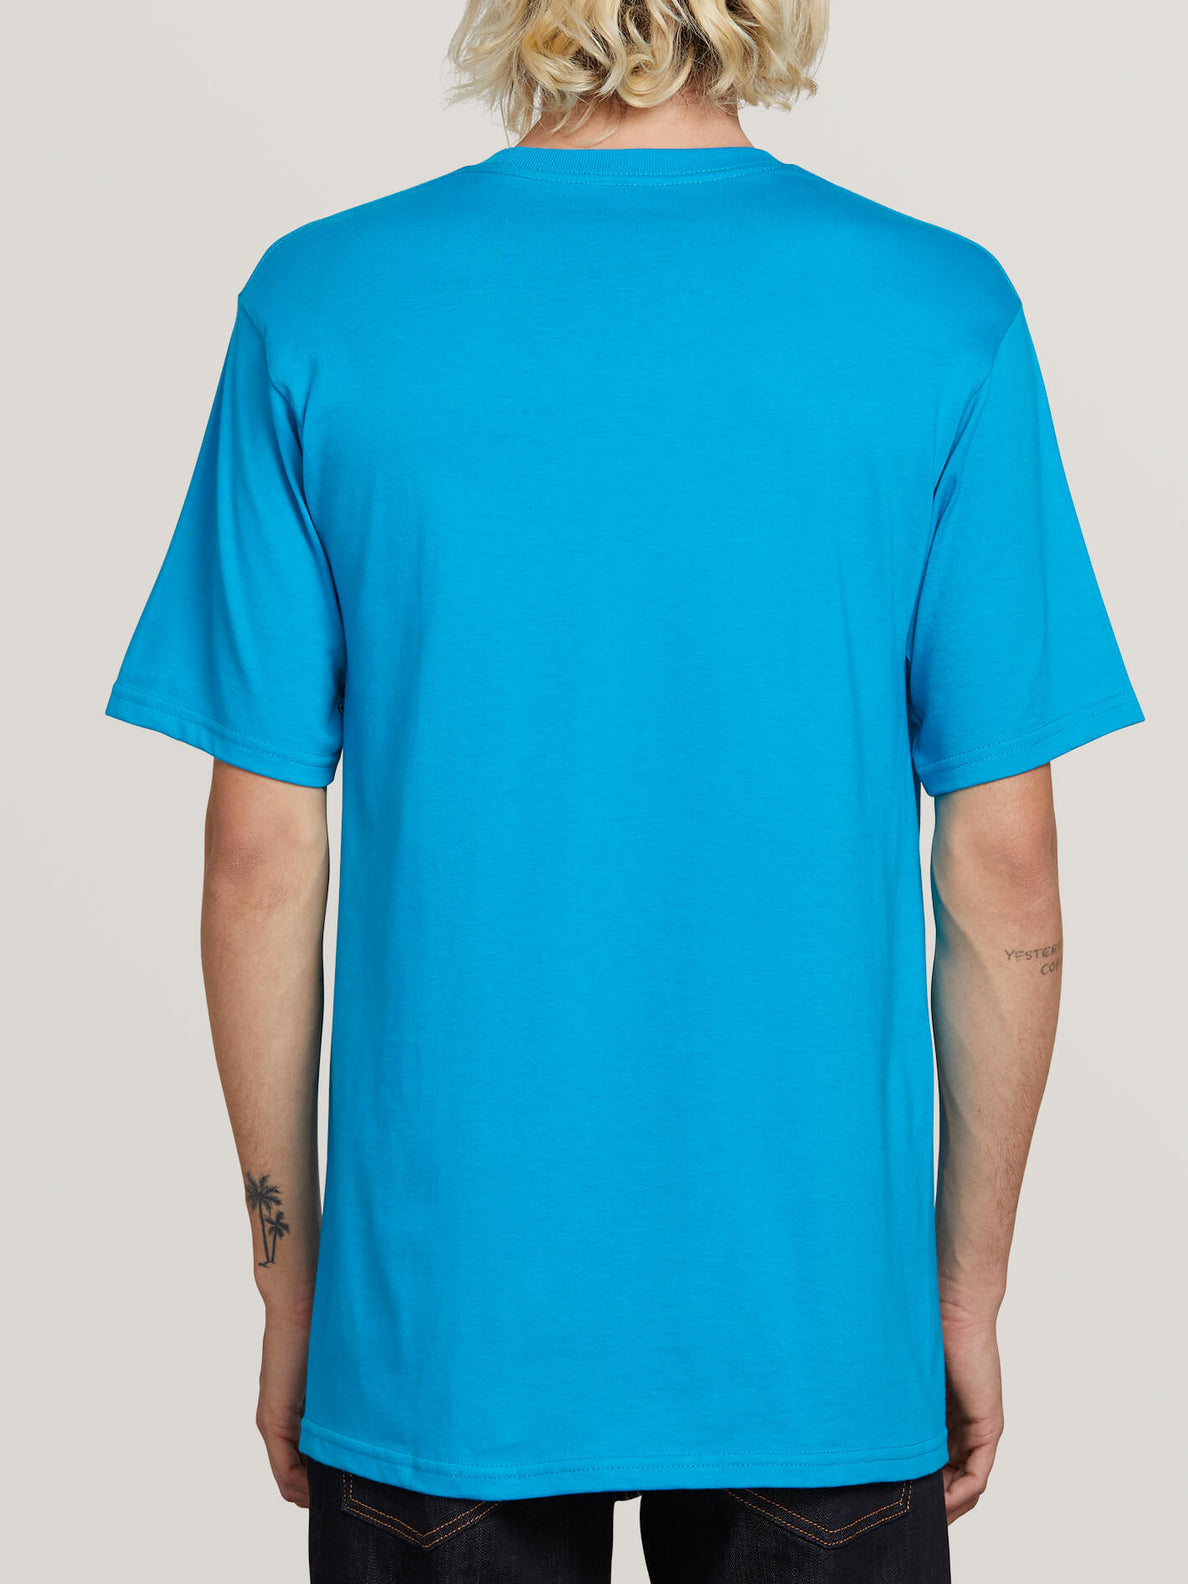 Super Clean Short Sleeve Tee In Bright Blue, Back View